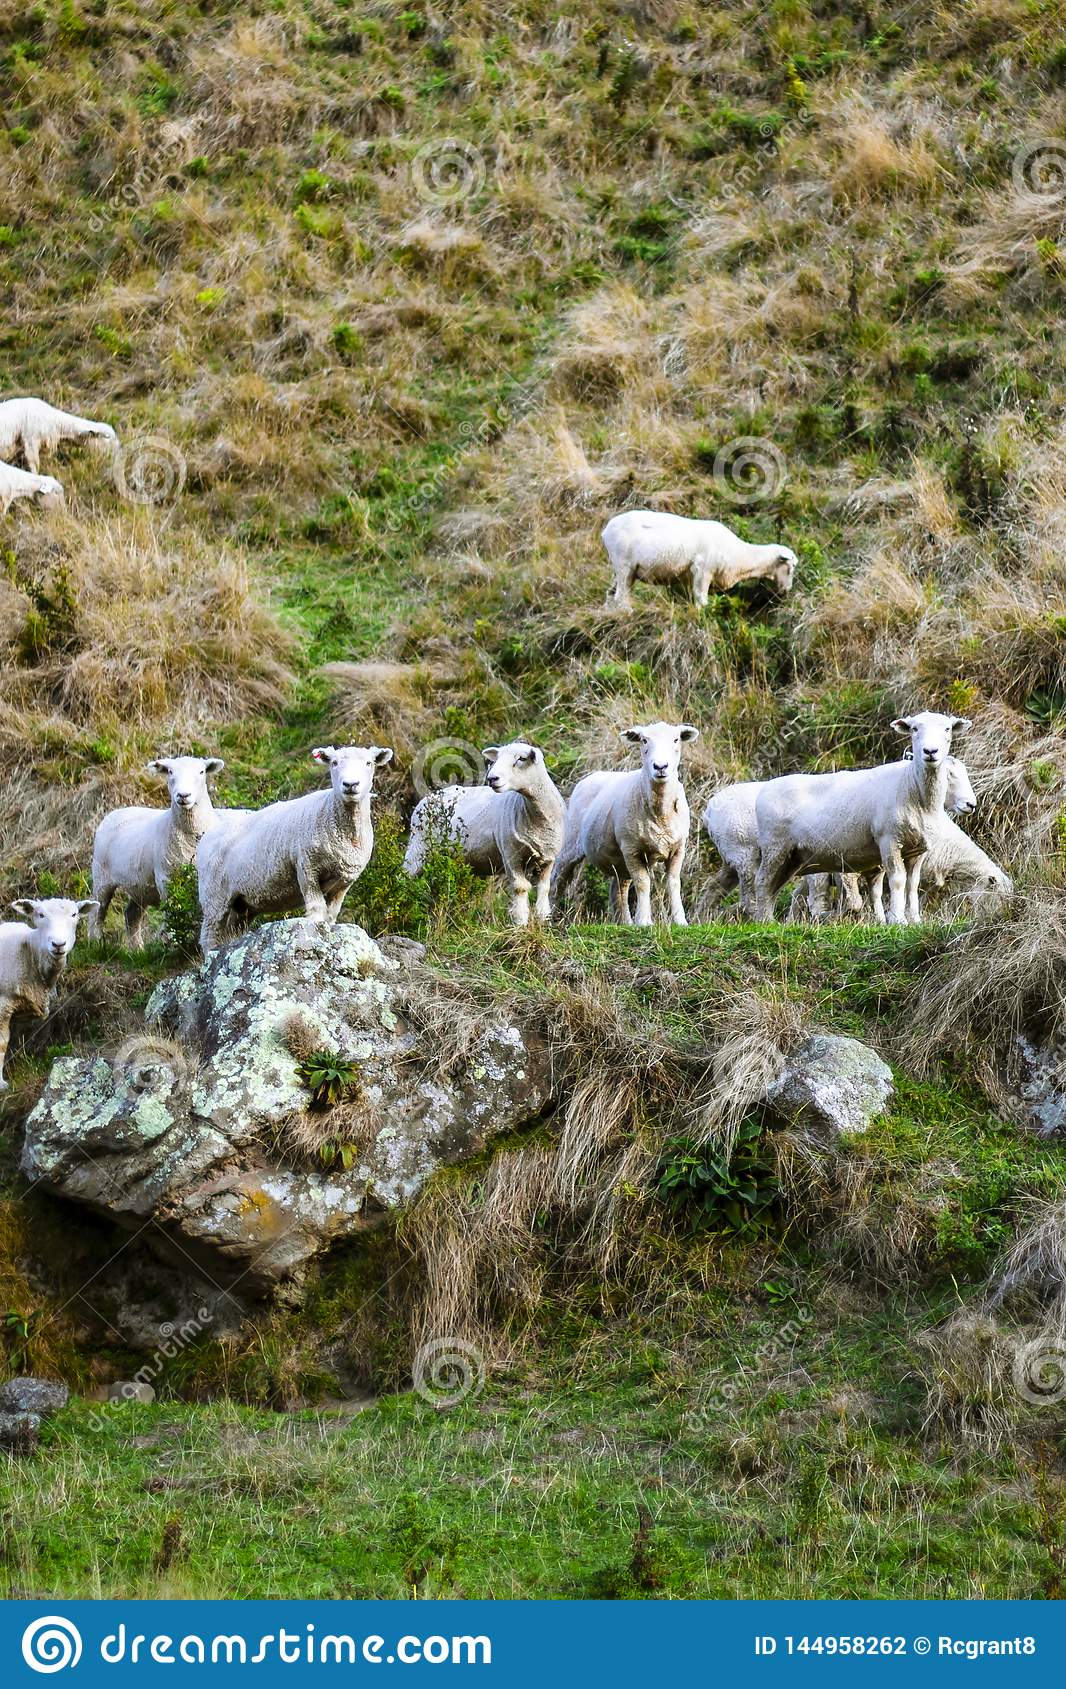 Flock of sheep on rocky mountain. Group of sheep on grass field on countryside farm.